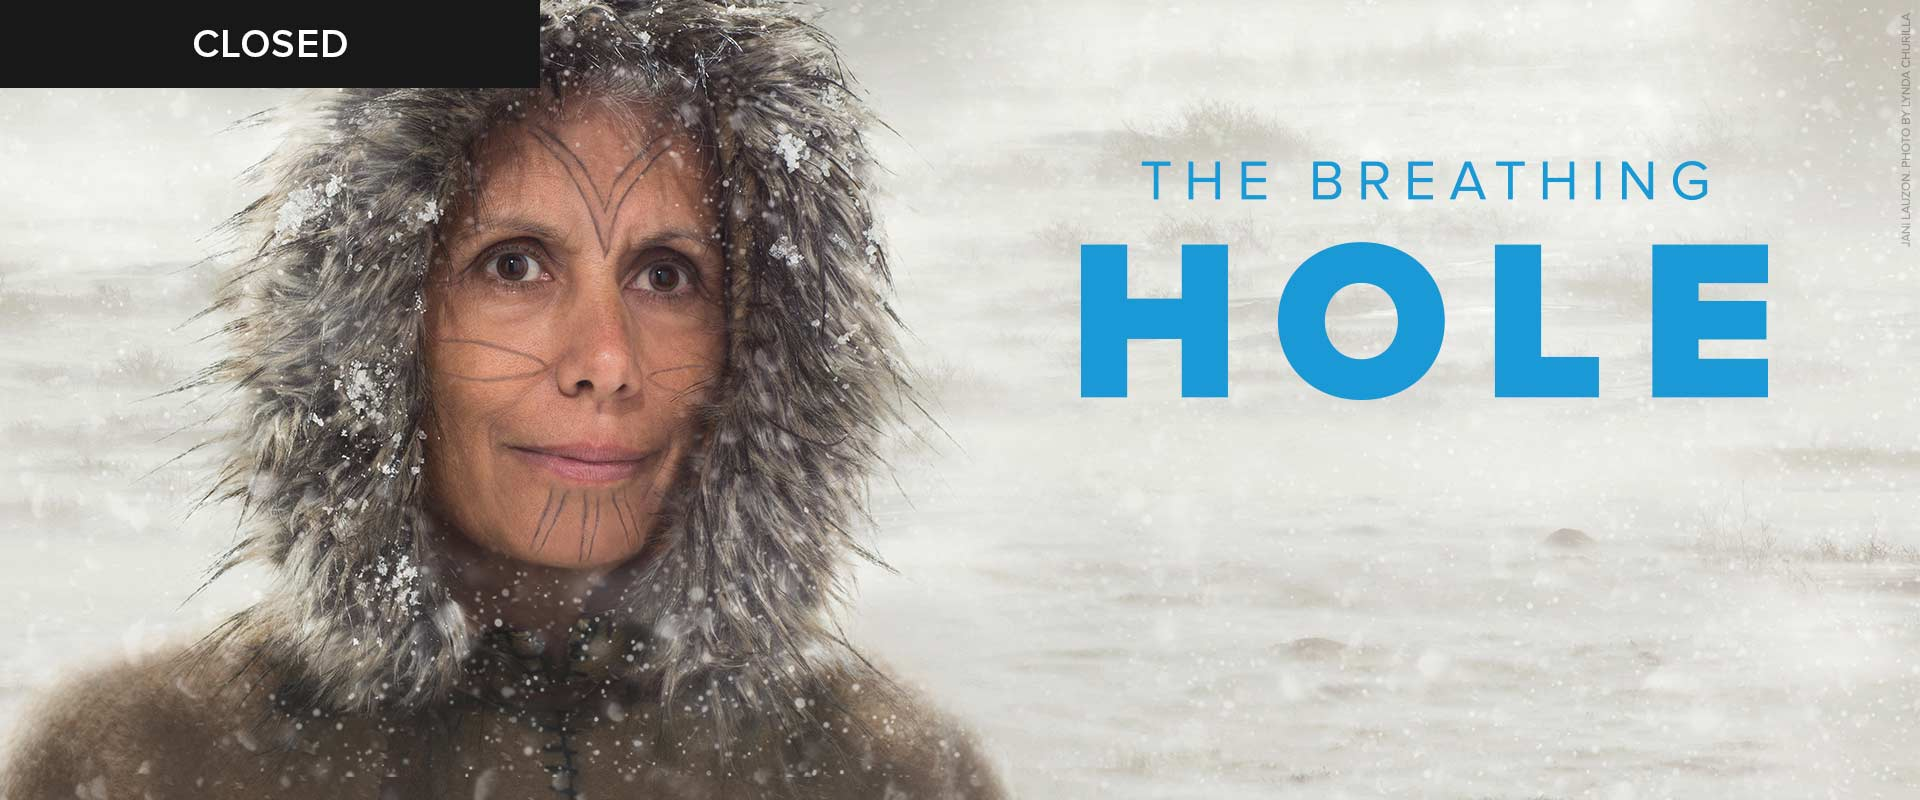 Publicity image from The Breathing Hole featuring Jani Lauzon